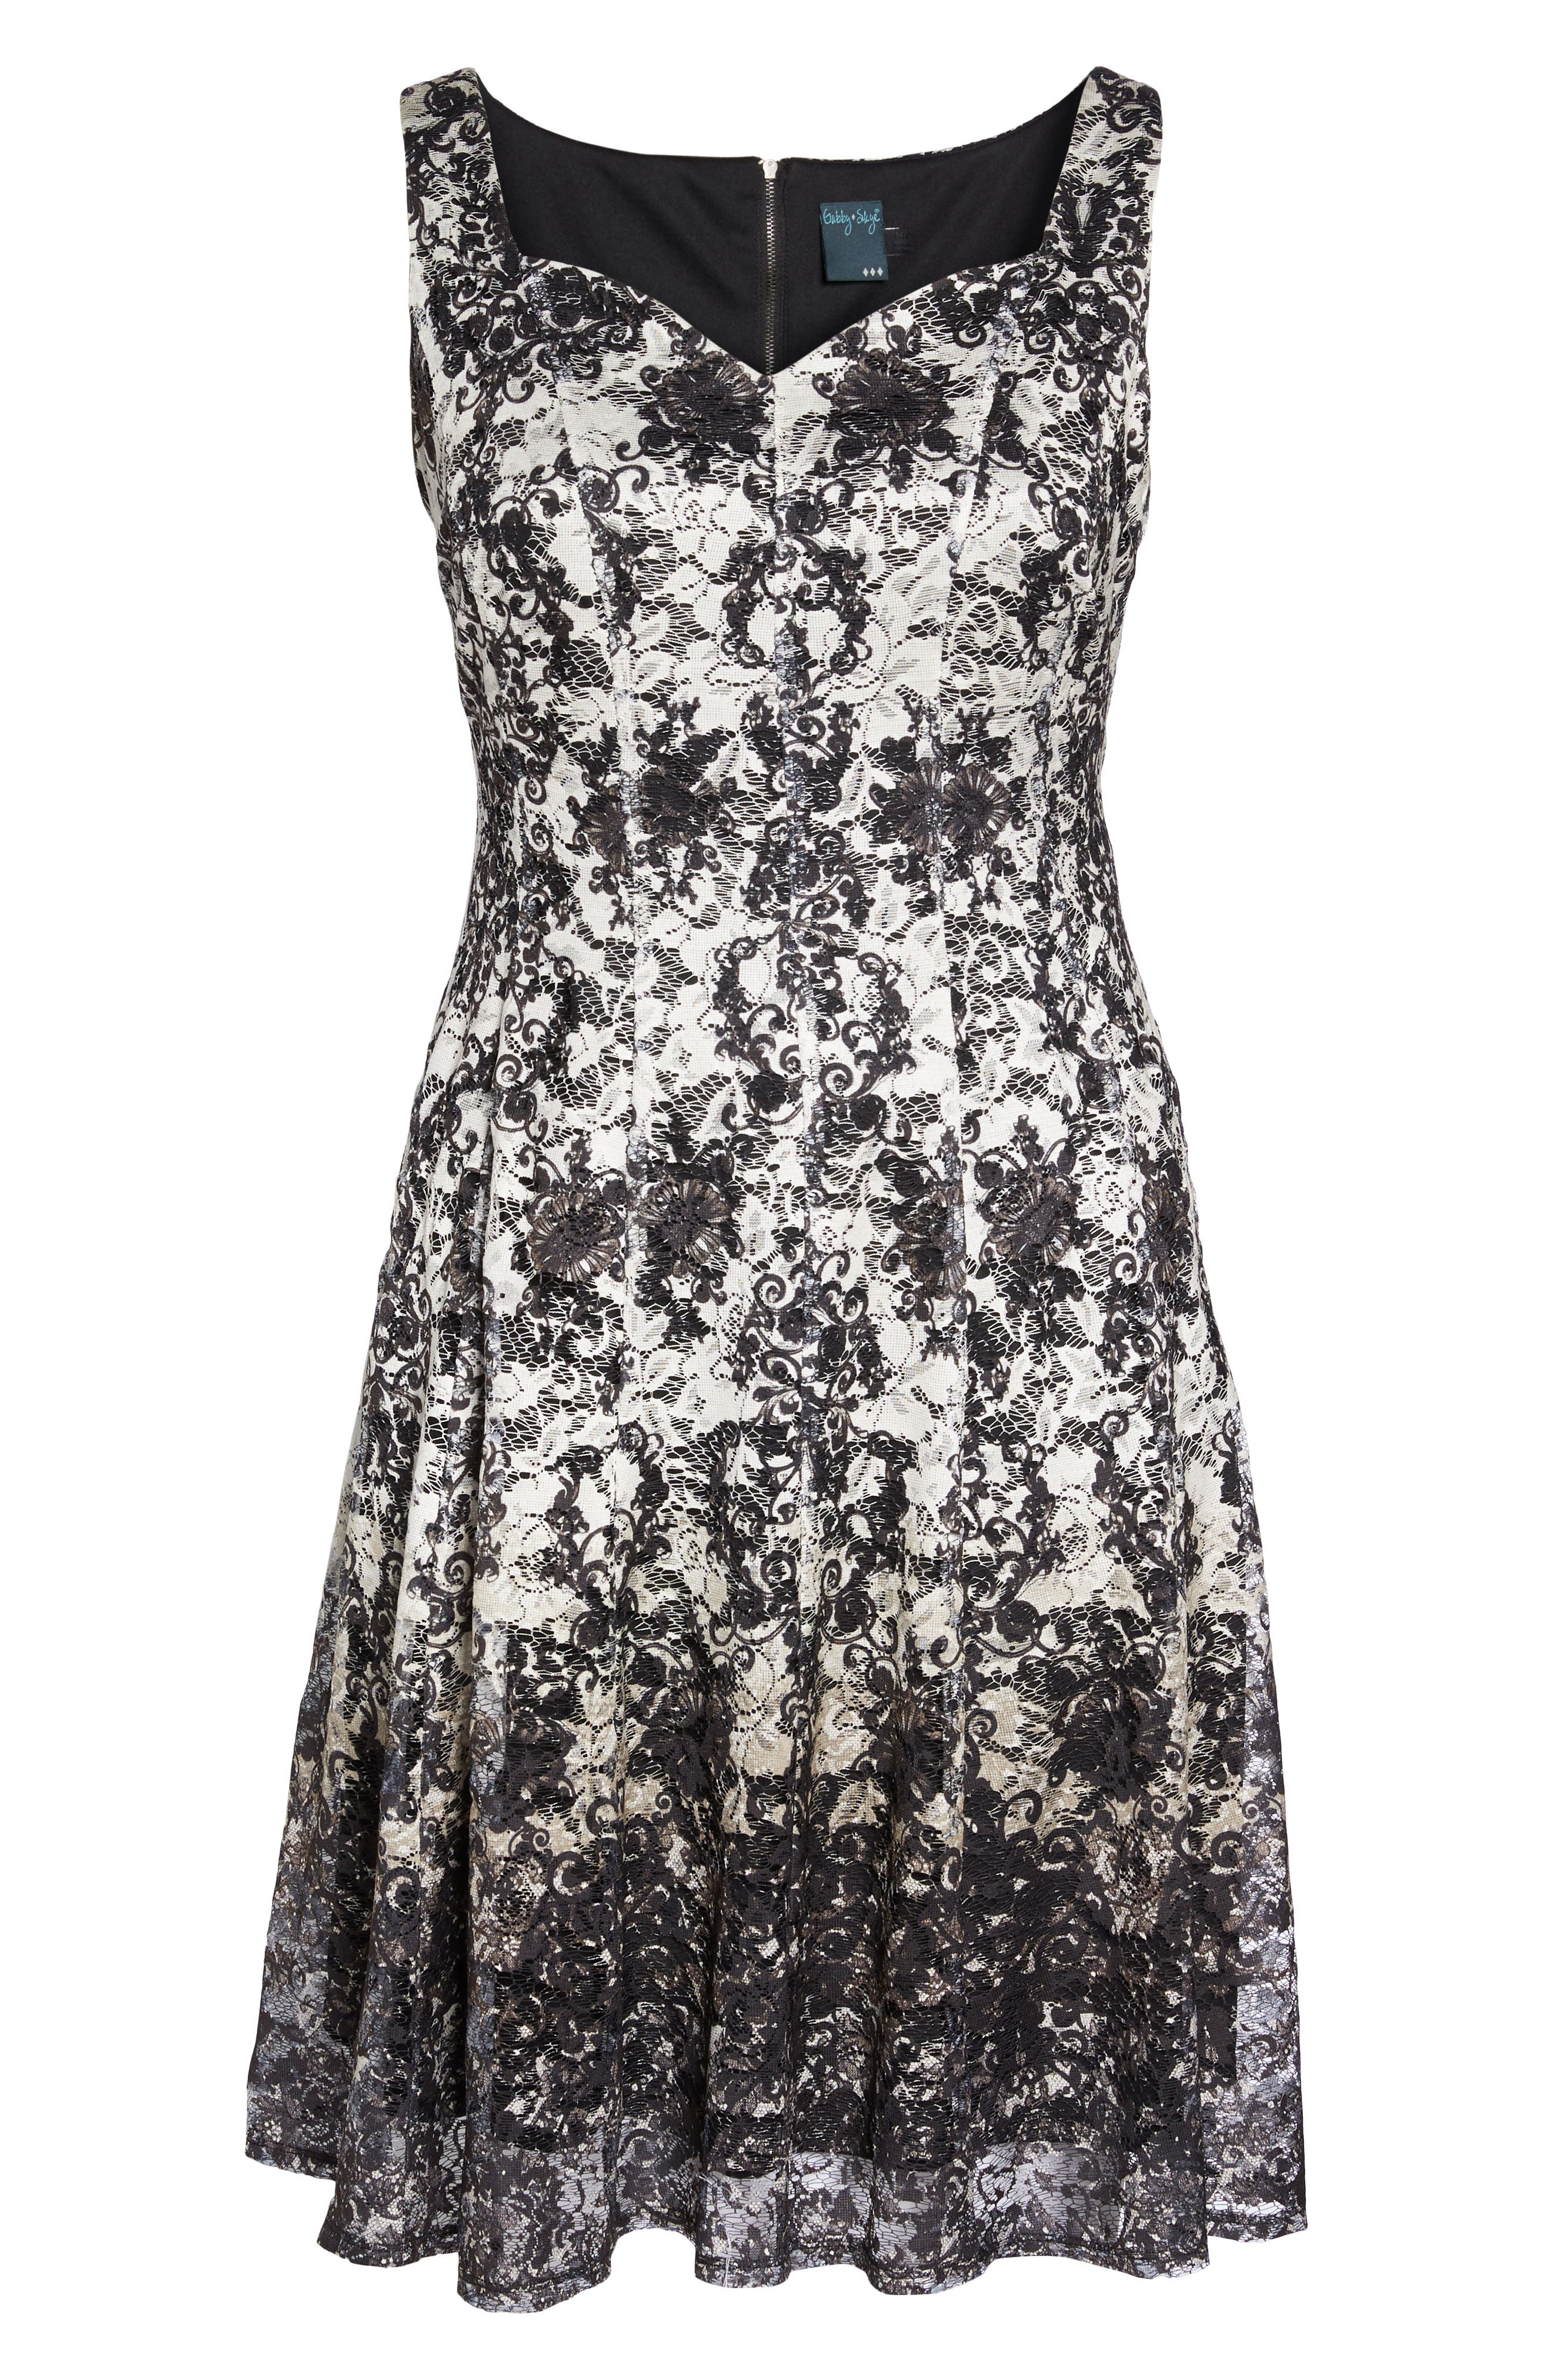 Printed Lace Fit & Flare Dress,                             Alternate thumbnail 6, color,                             010